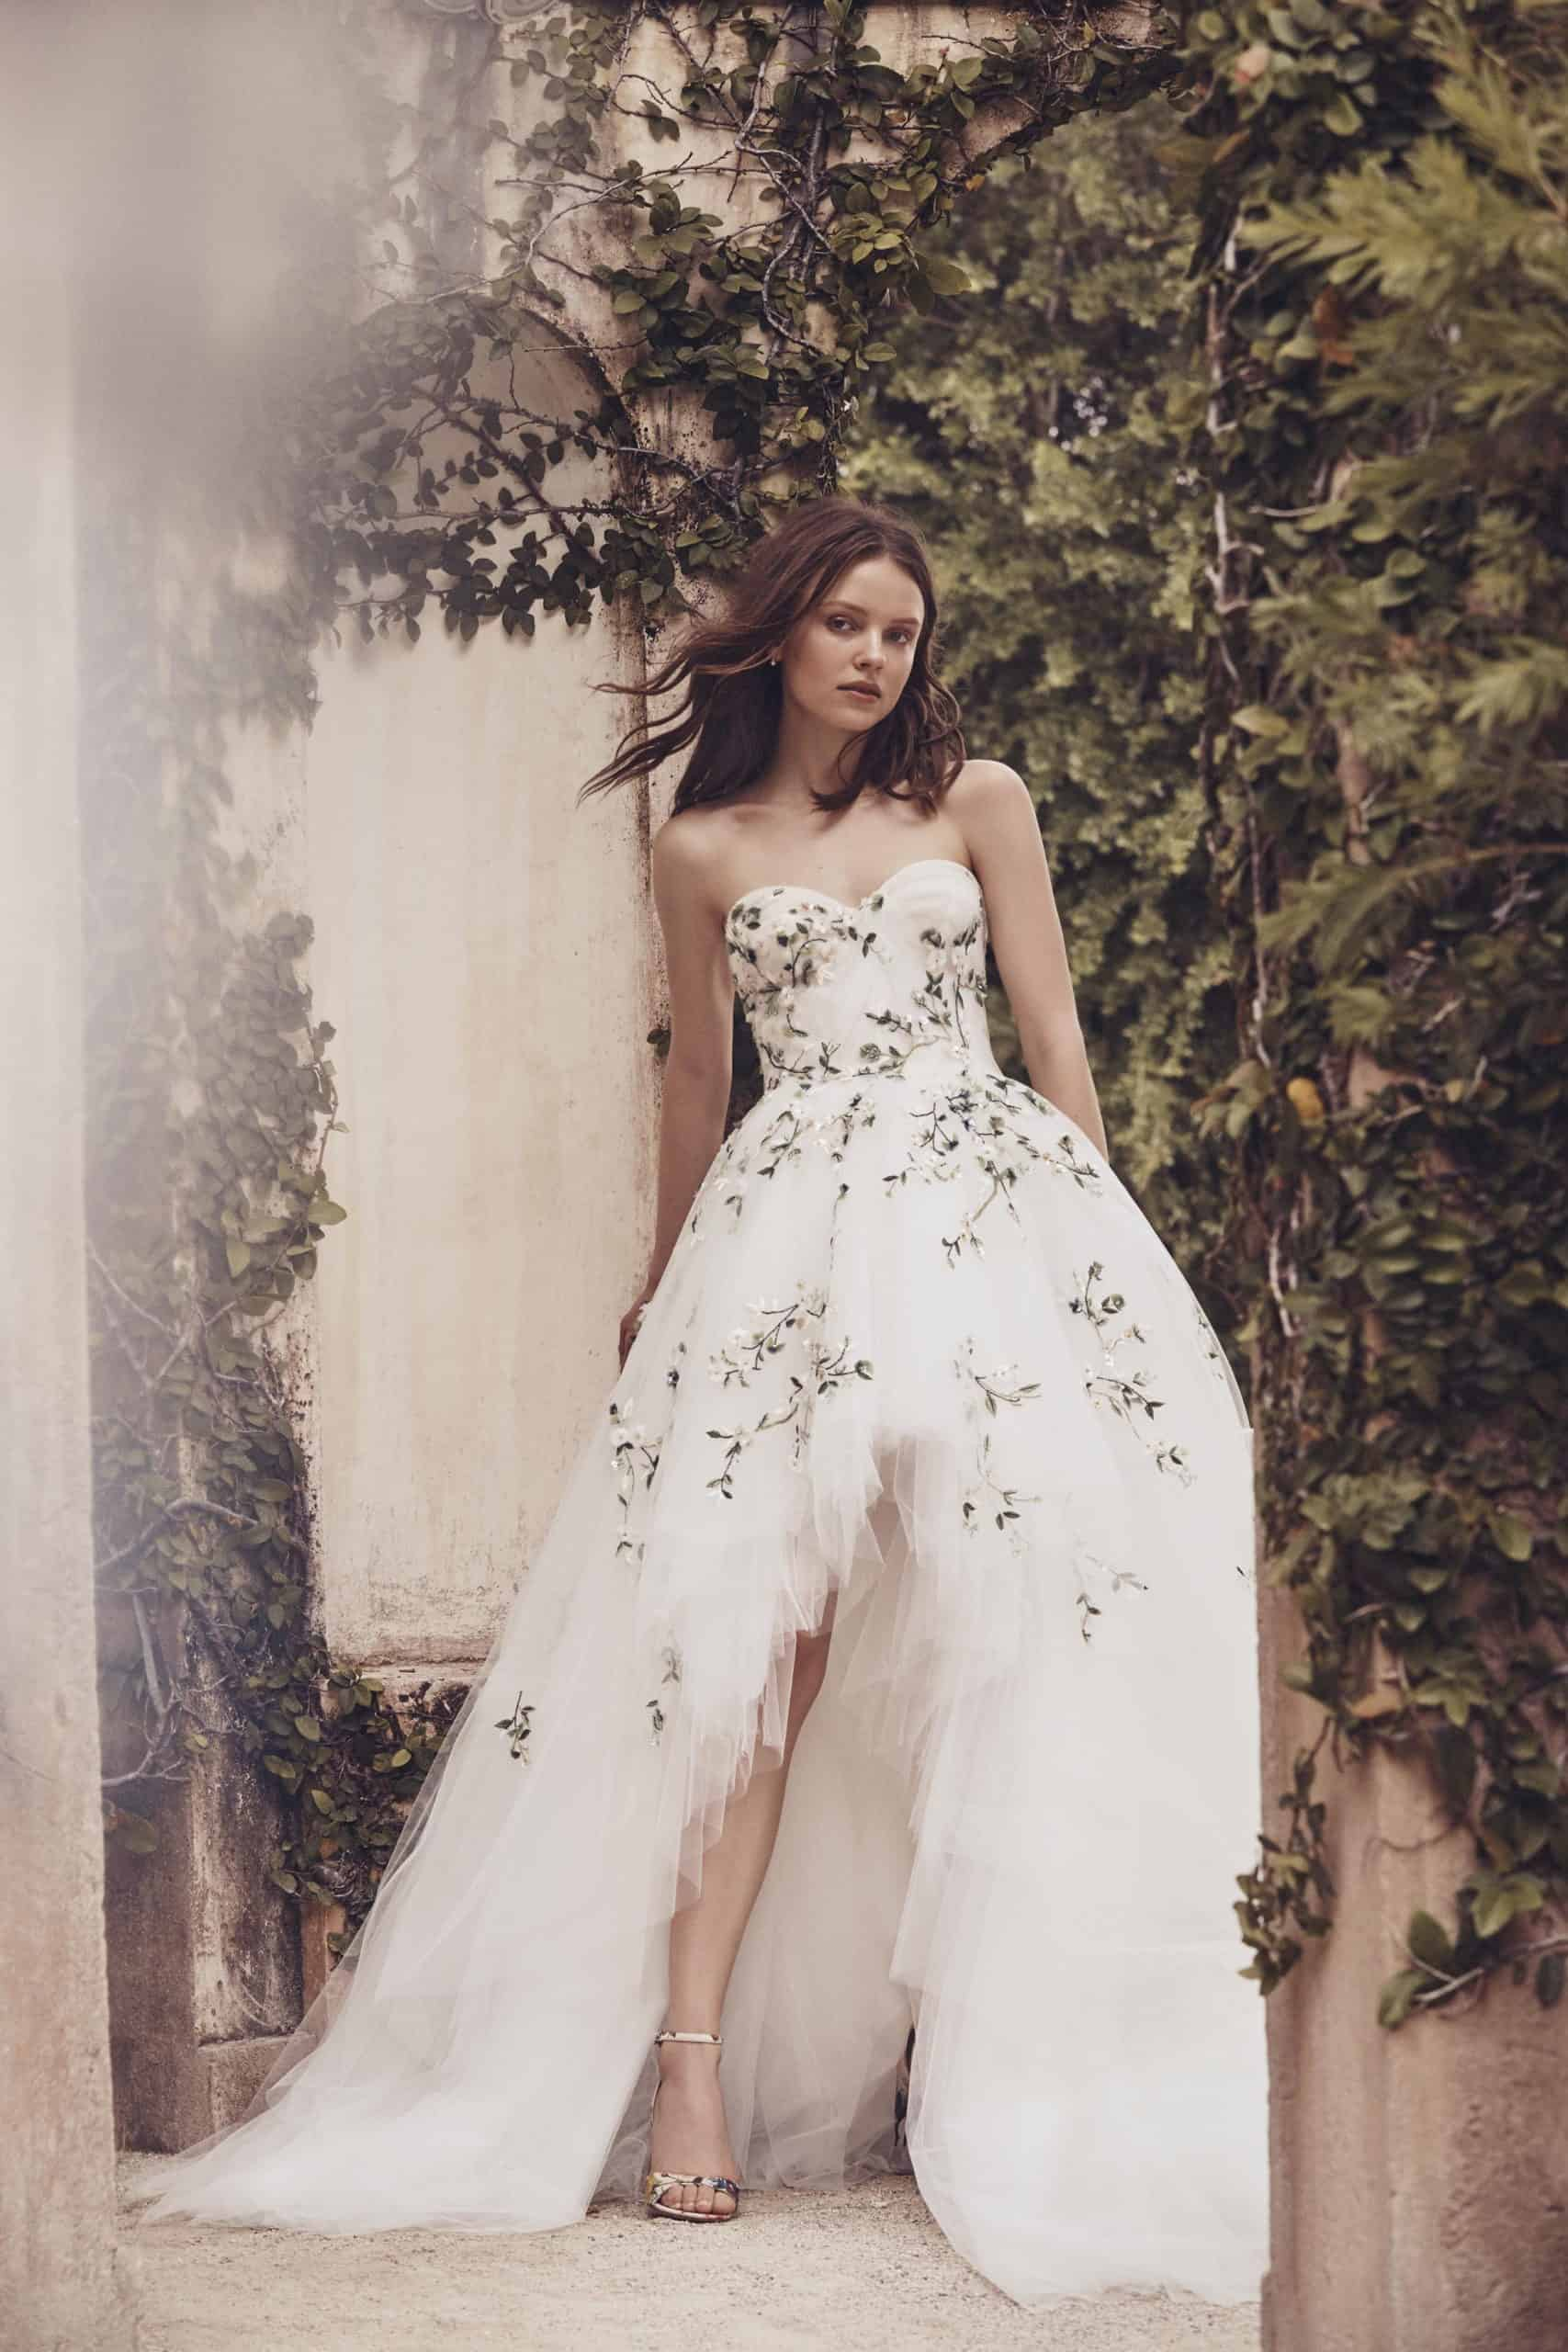 strapless white tulle wedding dress with embossed leaves by Monique Lhuillier